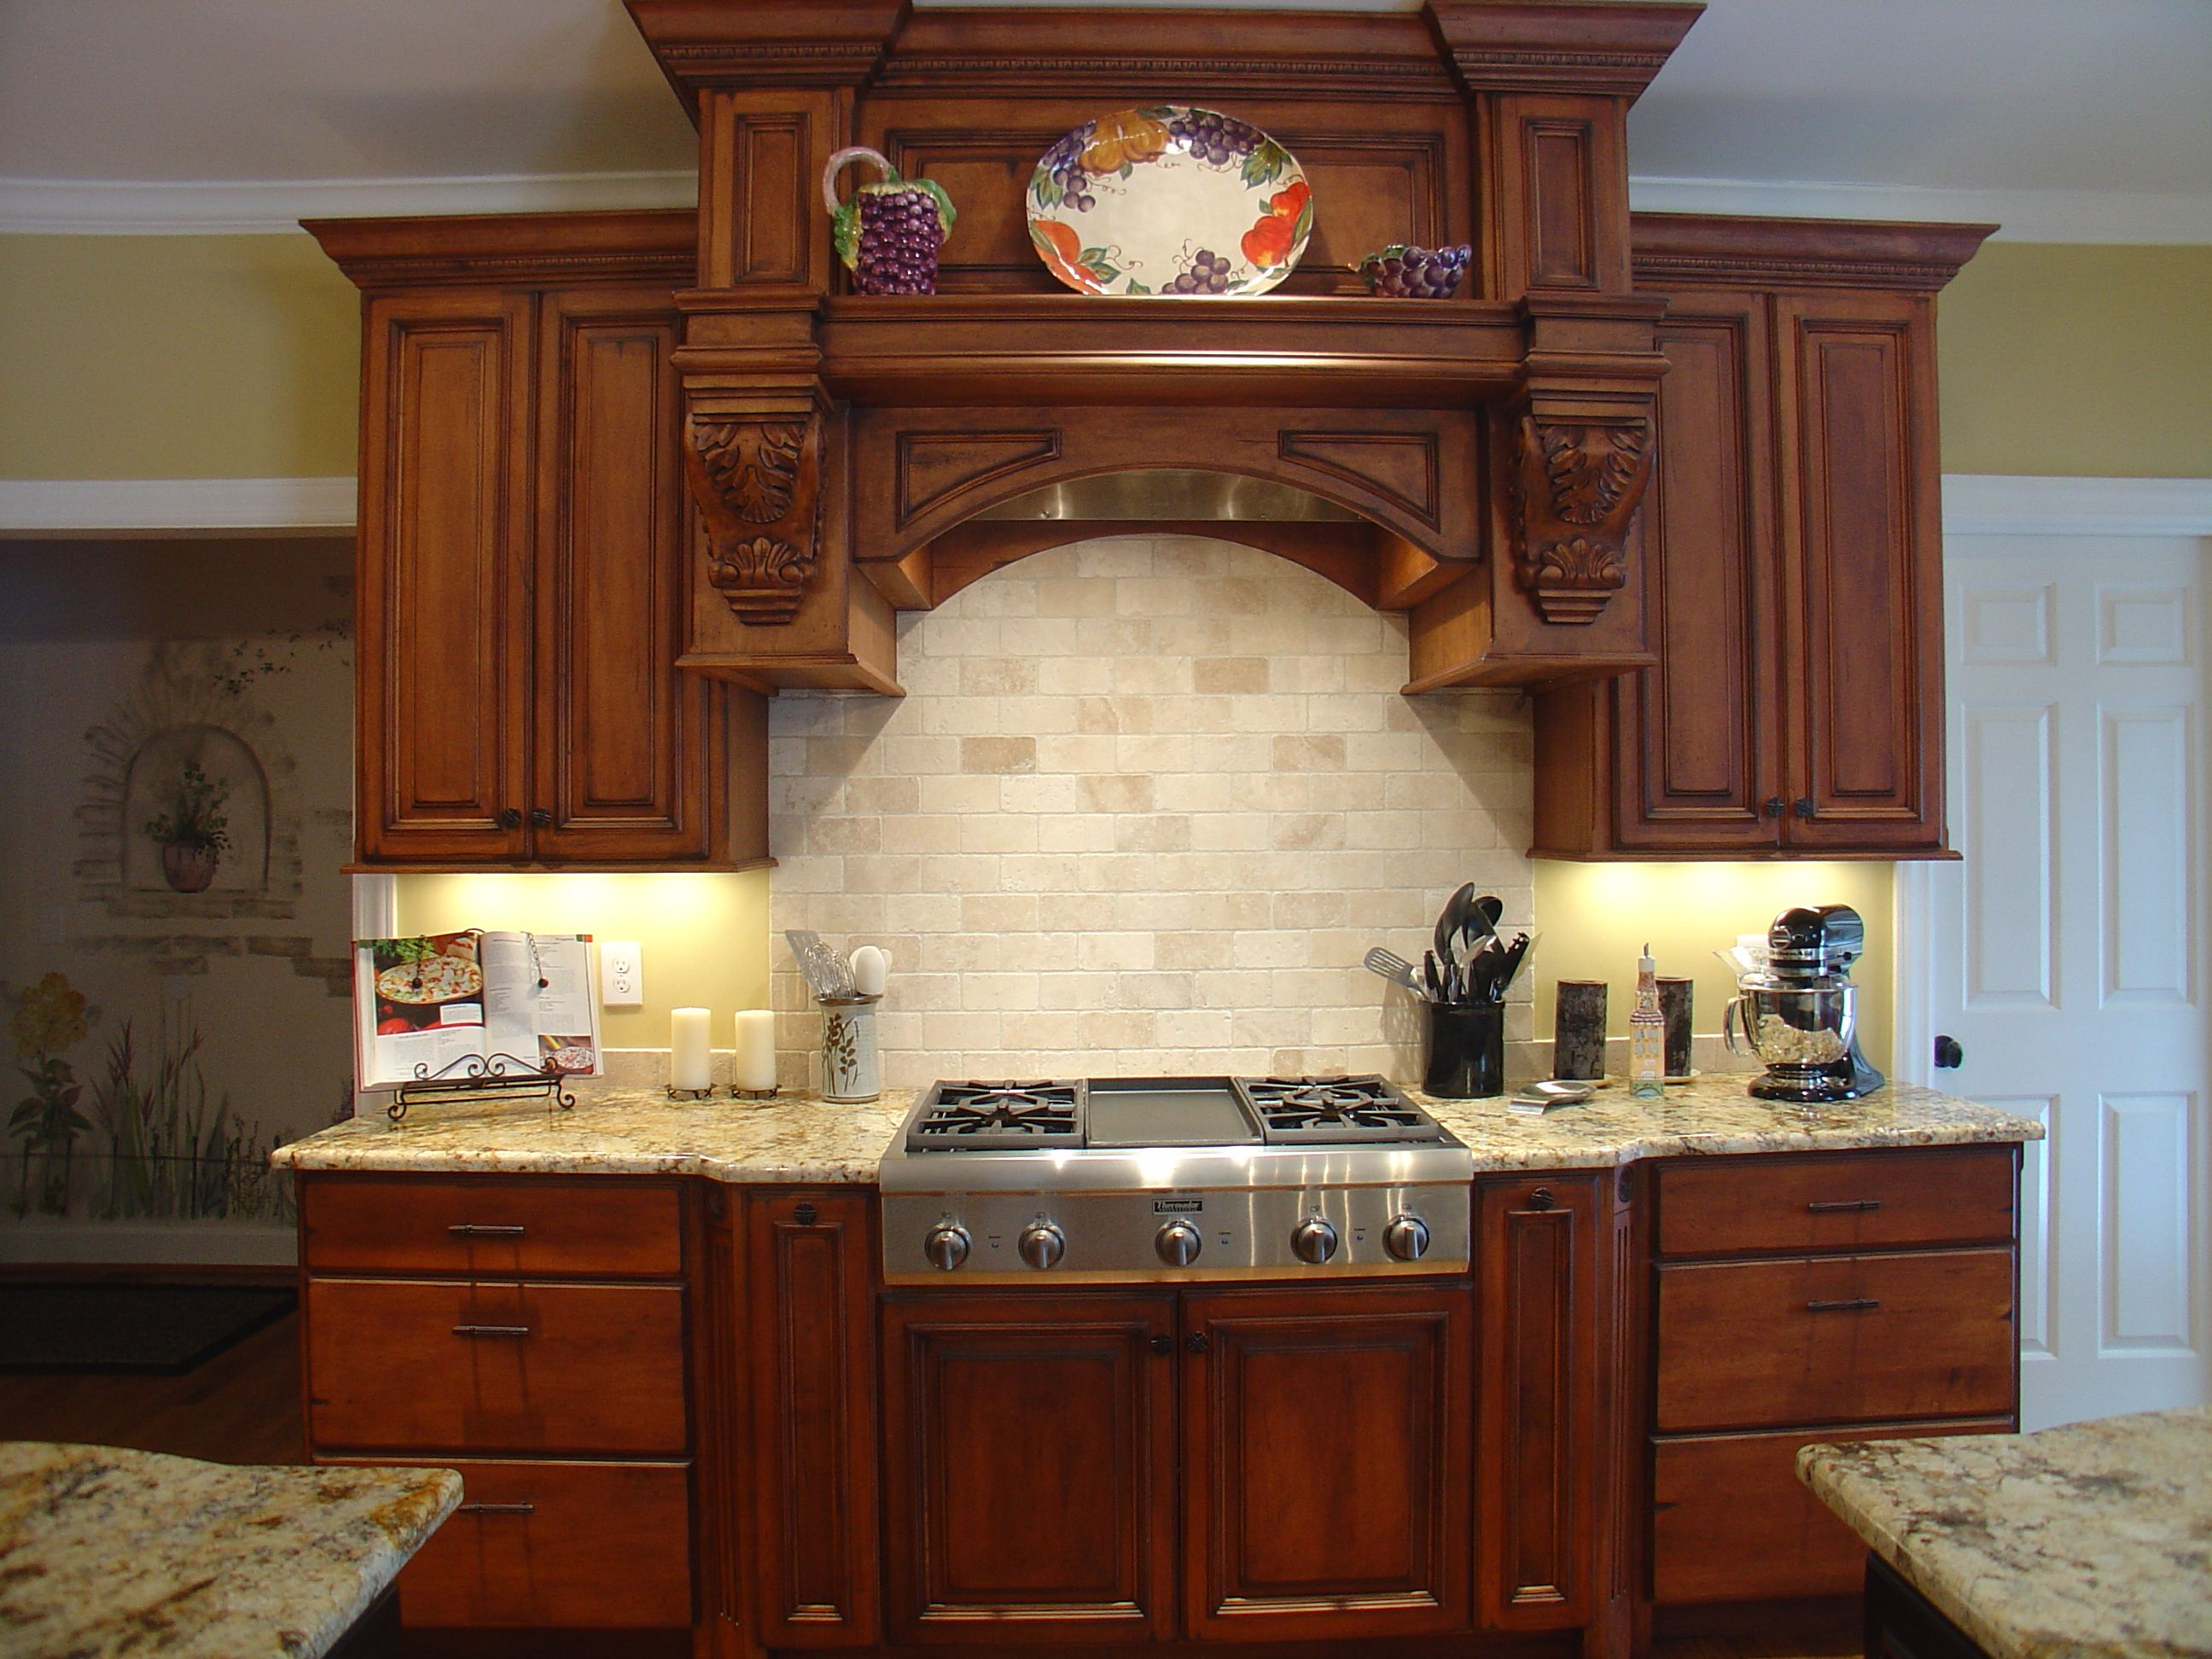 farmhouse style in kitchen with new maple glazed cabinets google search kitchen cabinet decor on farmhouse kitchen maple cabinets id=15200